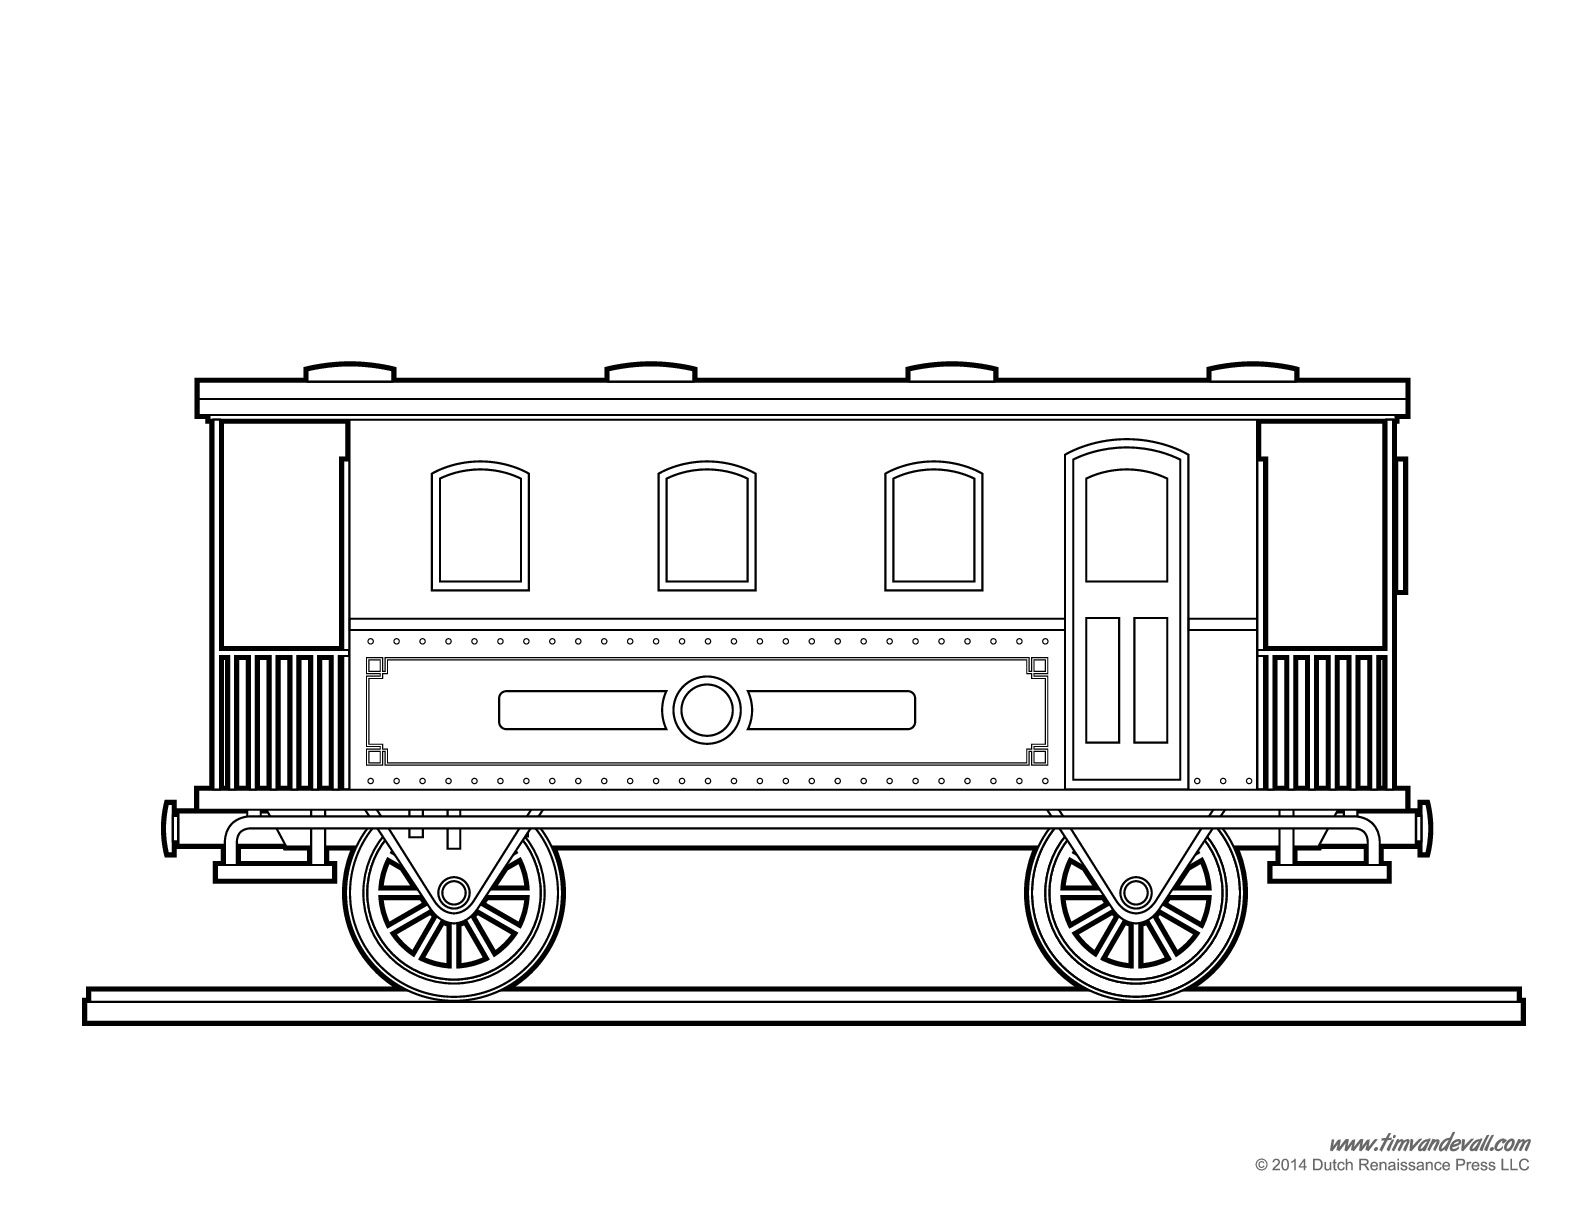 Pin By Stacey Sommerfeld On Ward Christmas Party With Images Cars Coloring Pages Train Template Coloring Pages